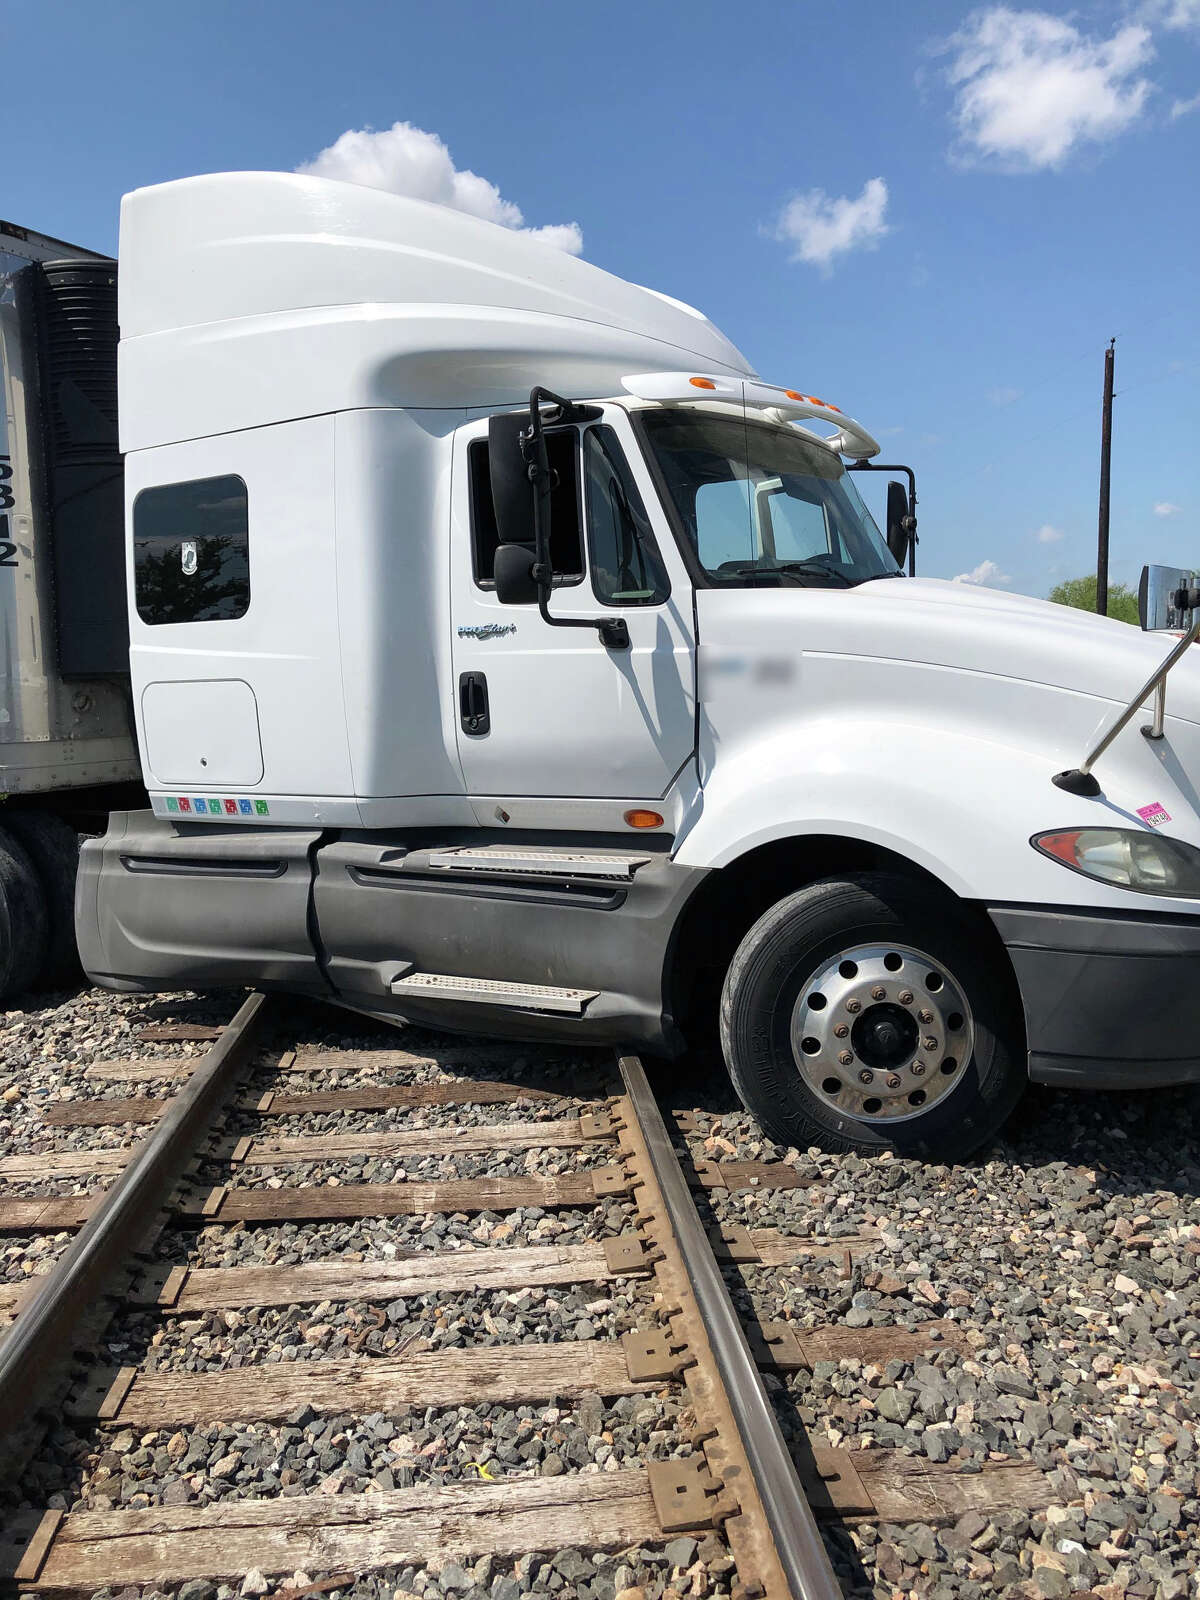 23 immigrants were discovered inside the trailer of a truck that was stuck on railroad tracks near mile marker 14 of I-35.